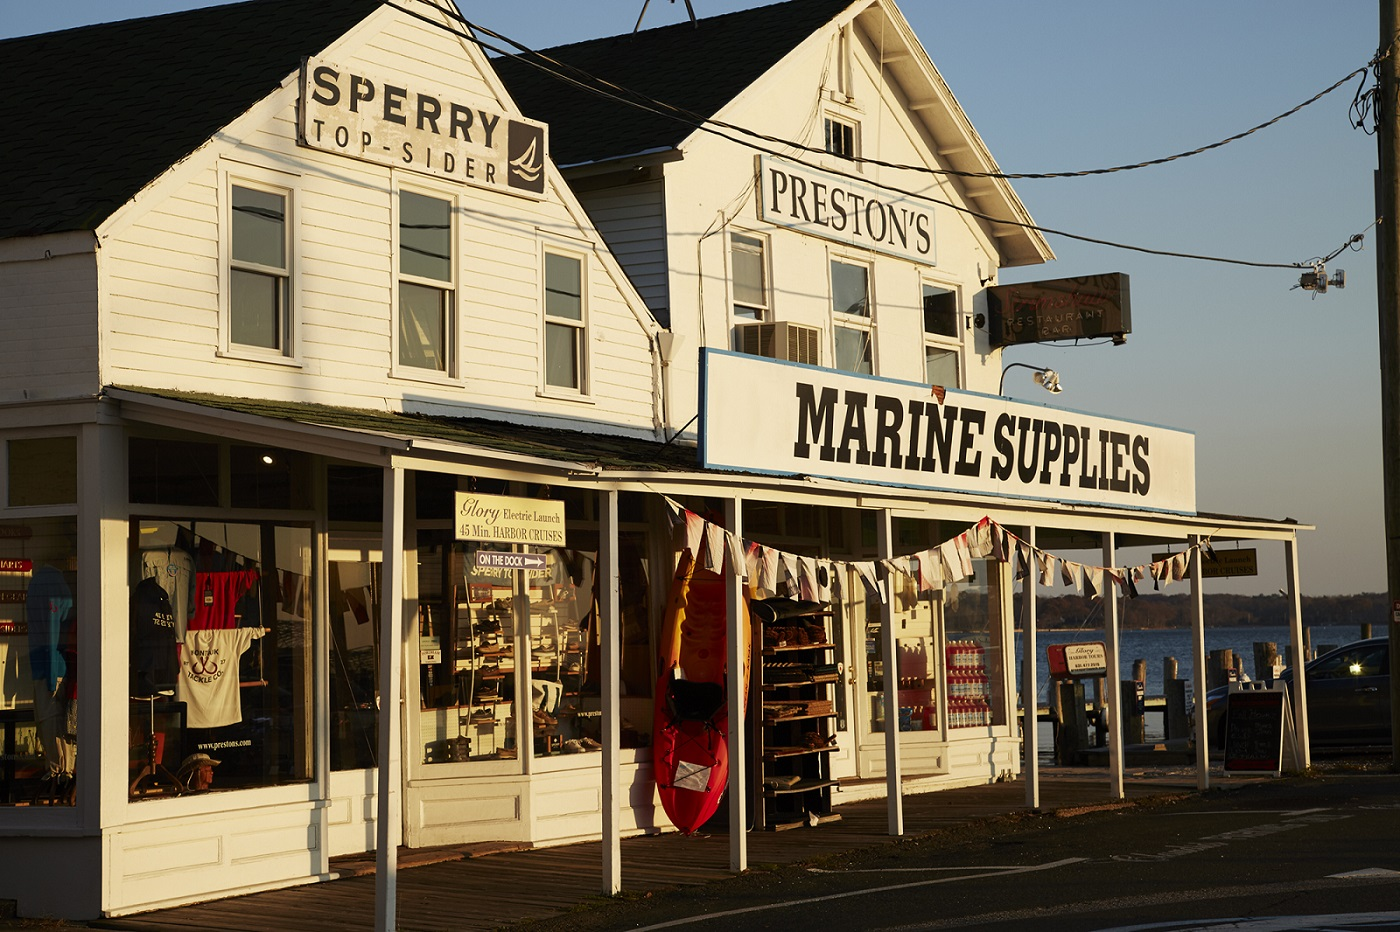 Preston Marine Supply Store